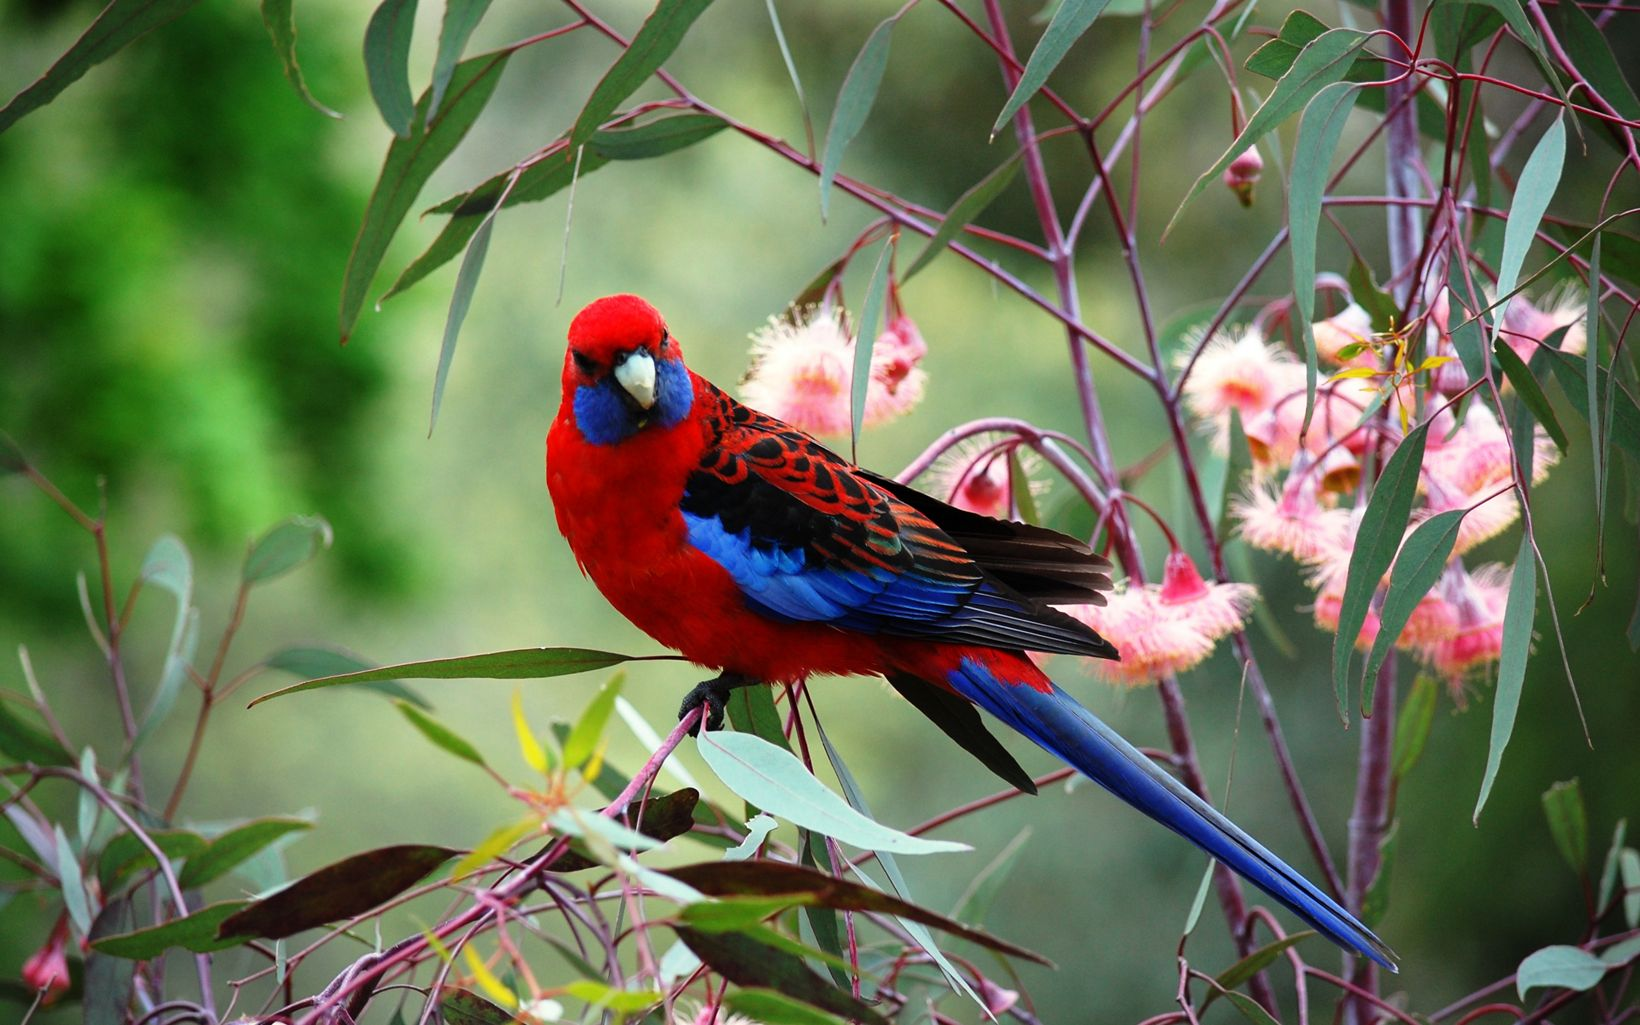 Crimson Rosella, a blue-and-red bird native to Melbourne